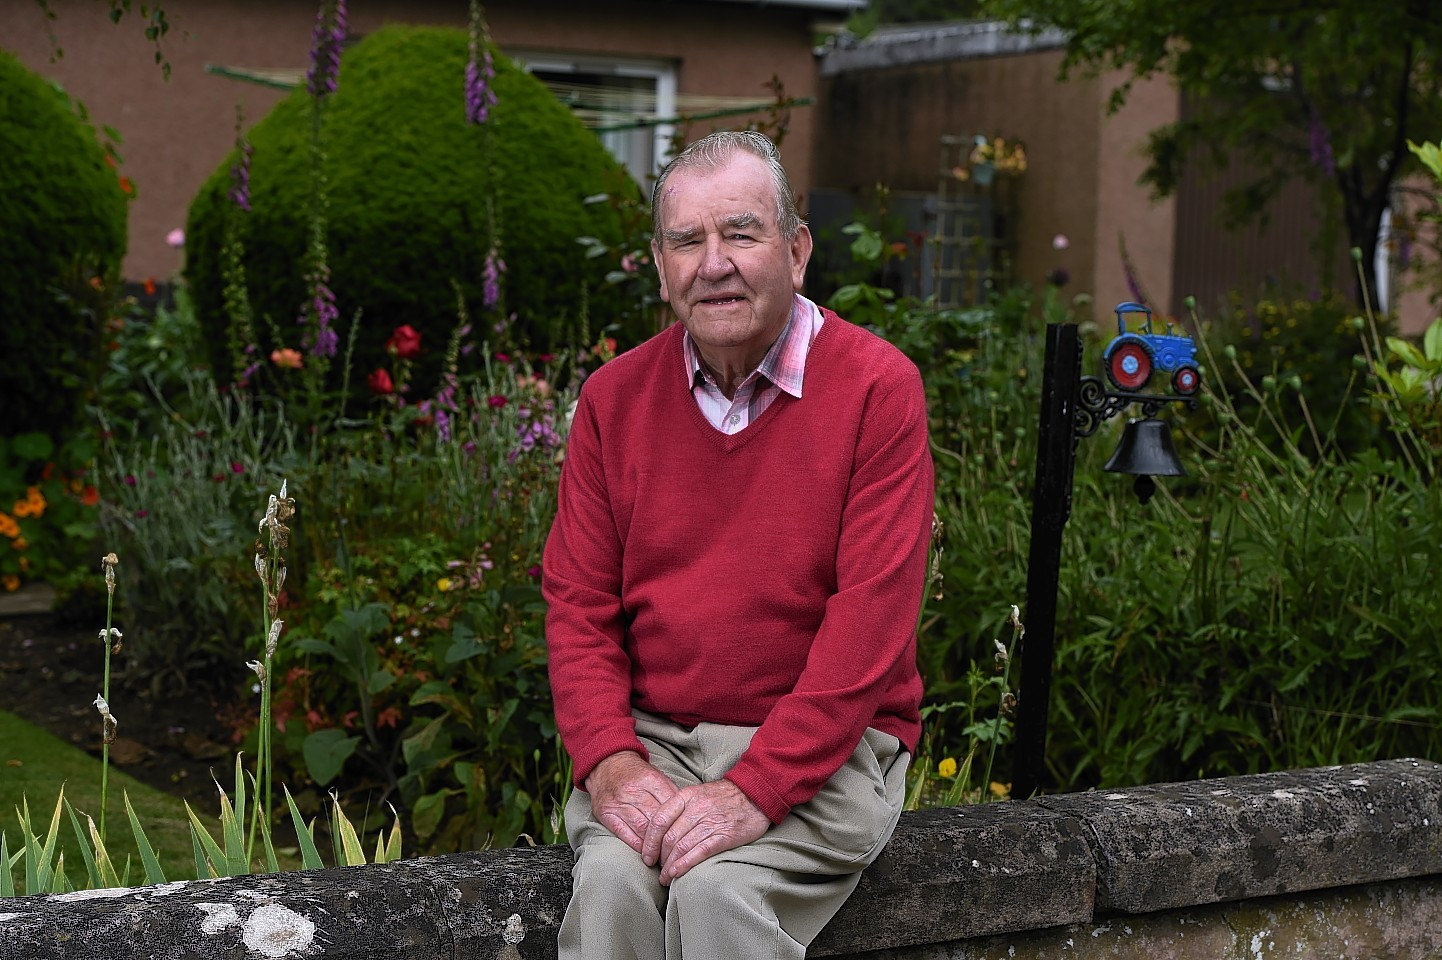 Alec McRobert celebrated his 80th birthday by raising money for local causes